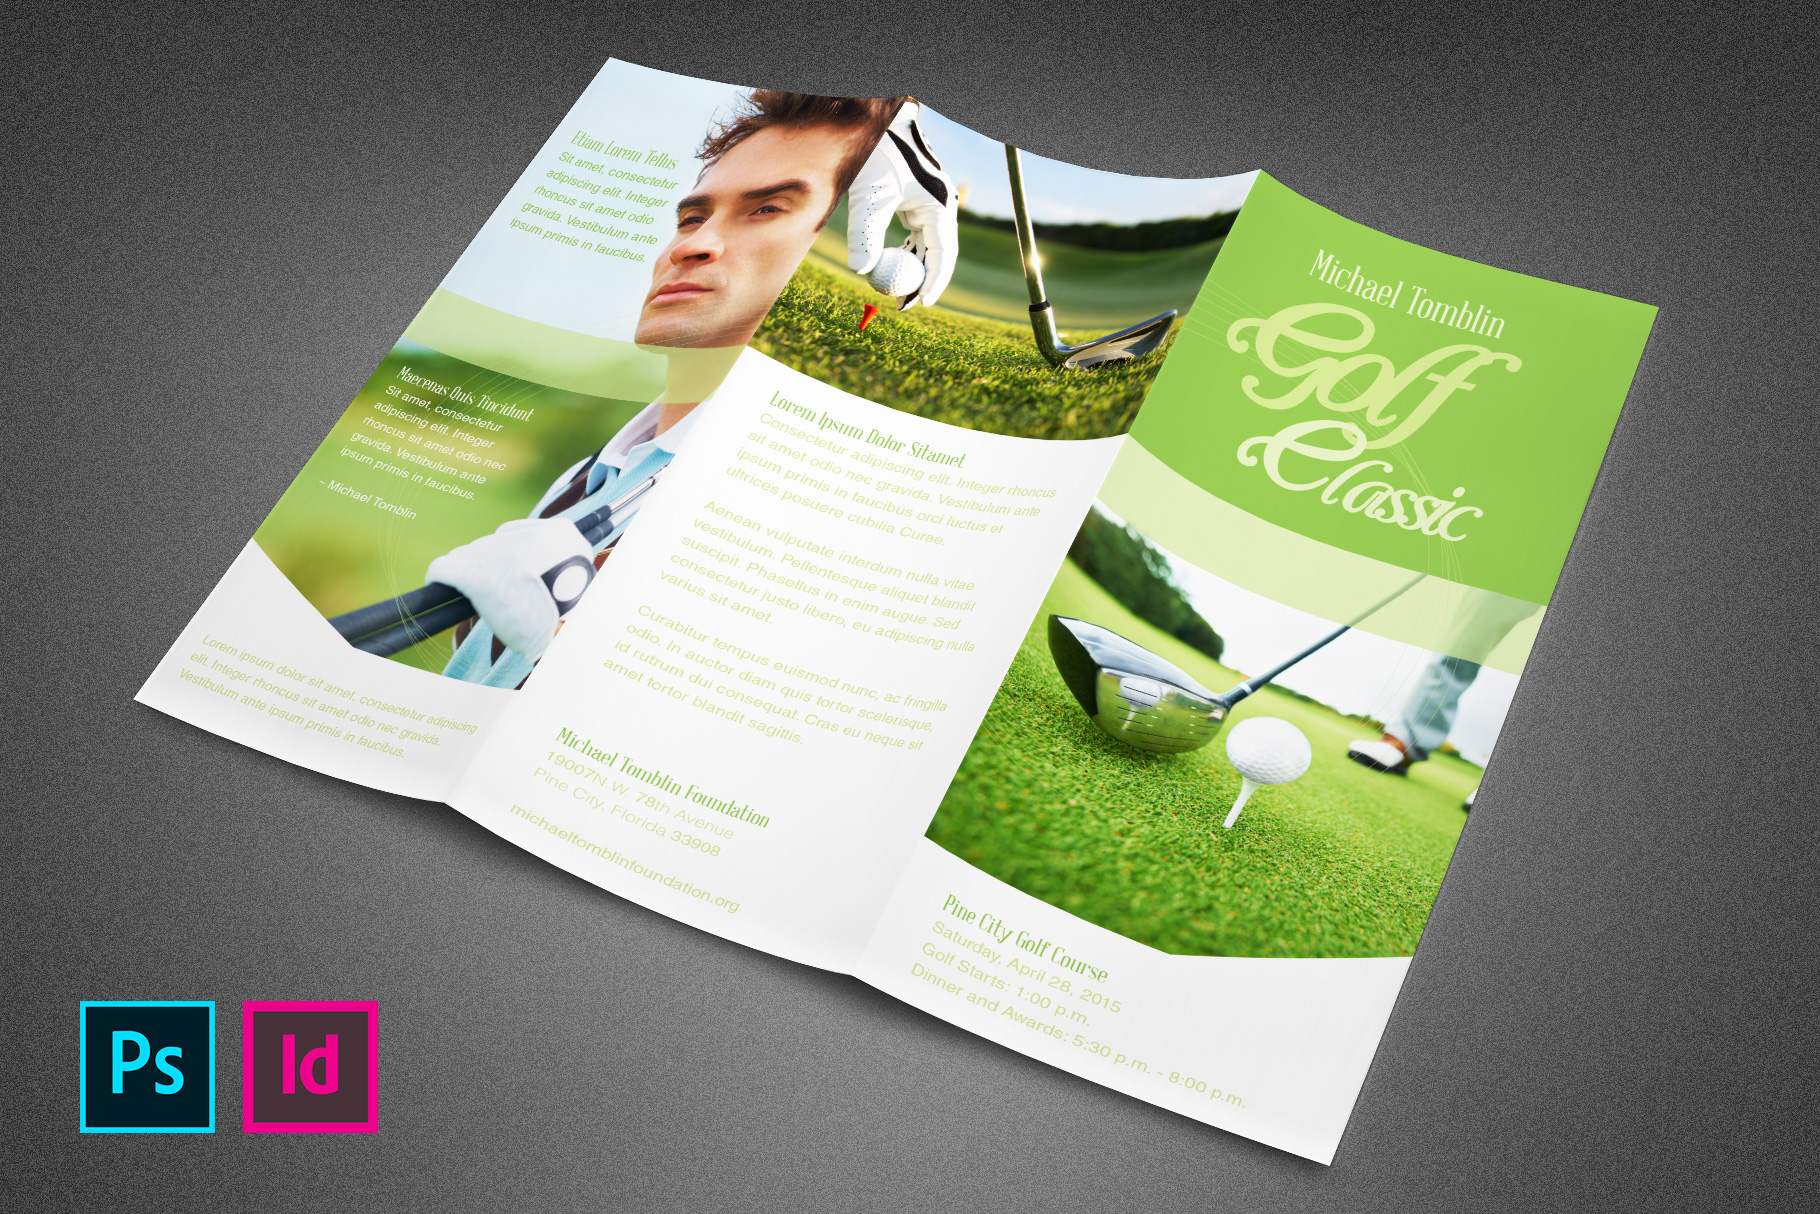 Golf Classic Event Tri-fold Brochure example image 2